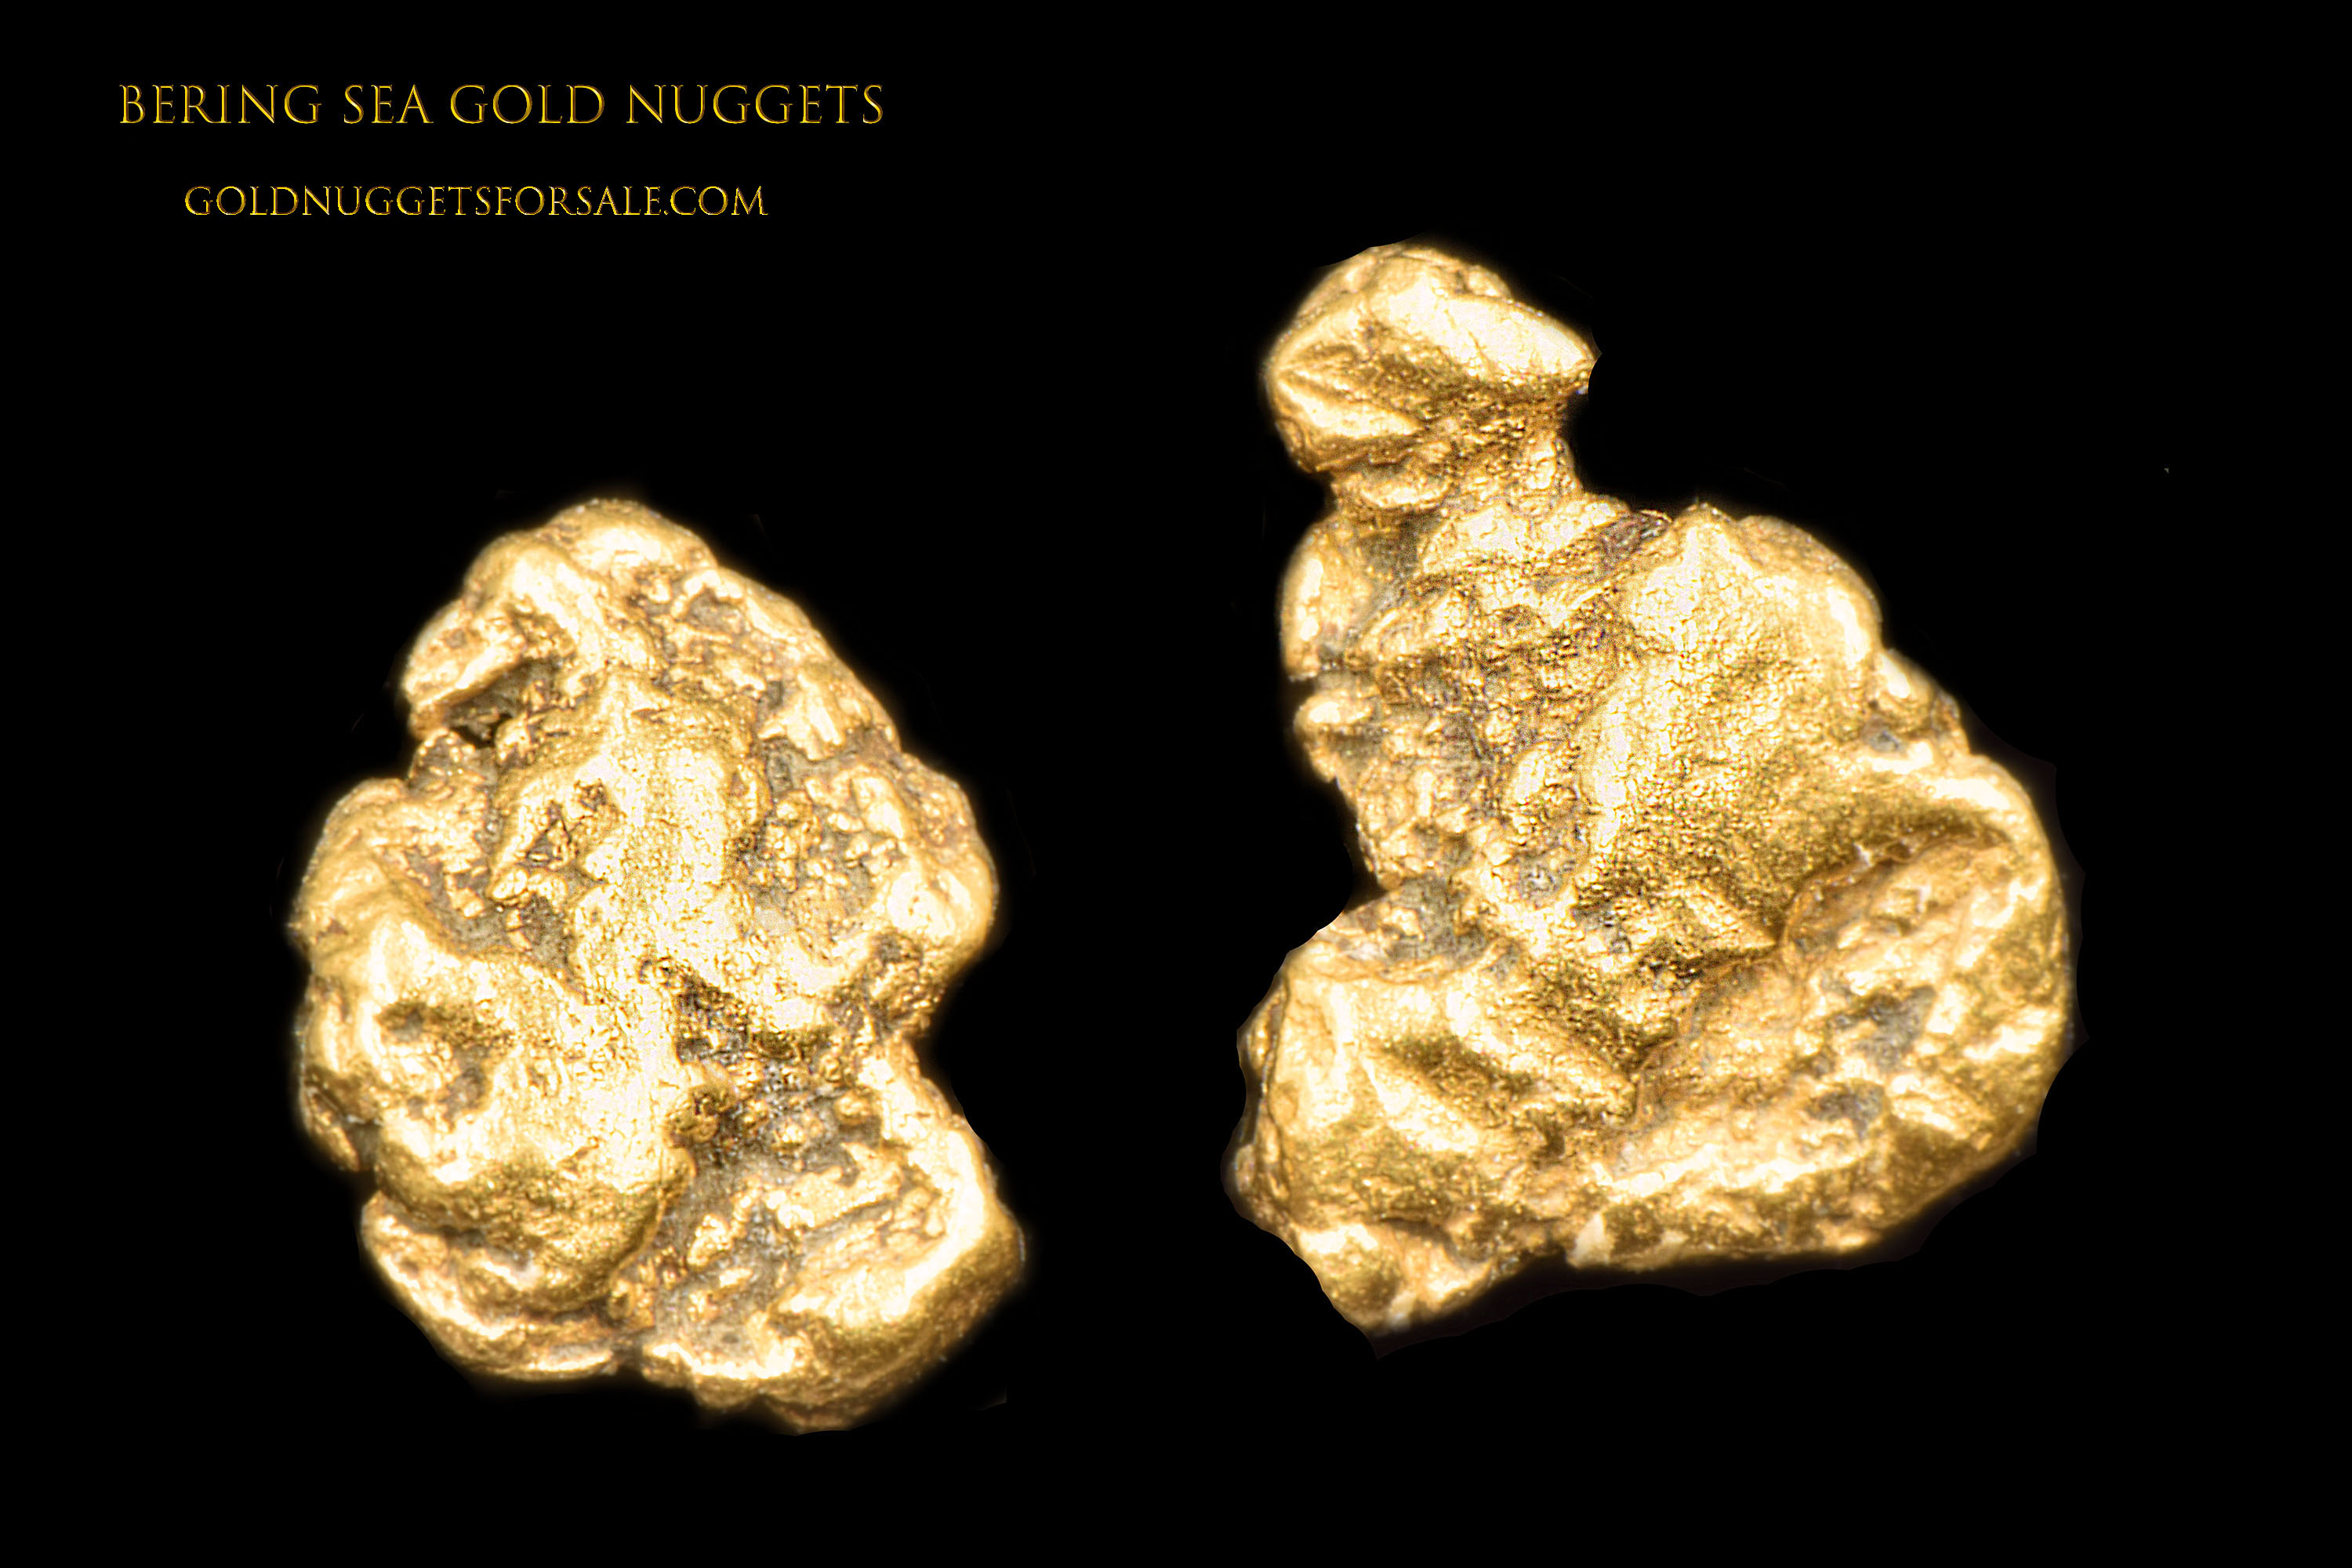 Twin Jewelry Grade Gold Nuggets from the Bering Sea